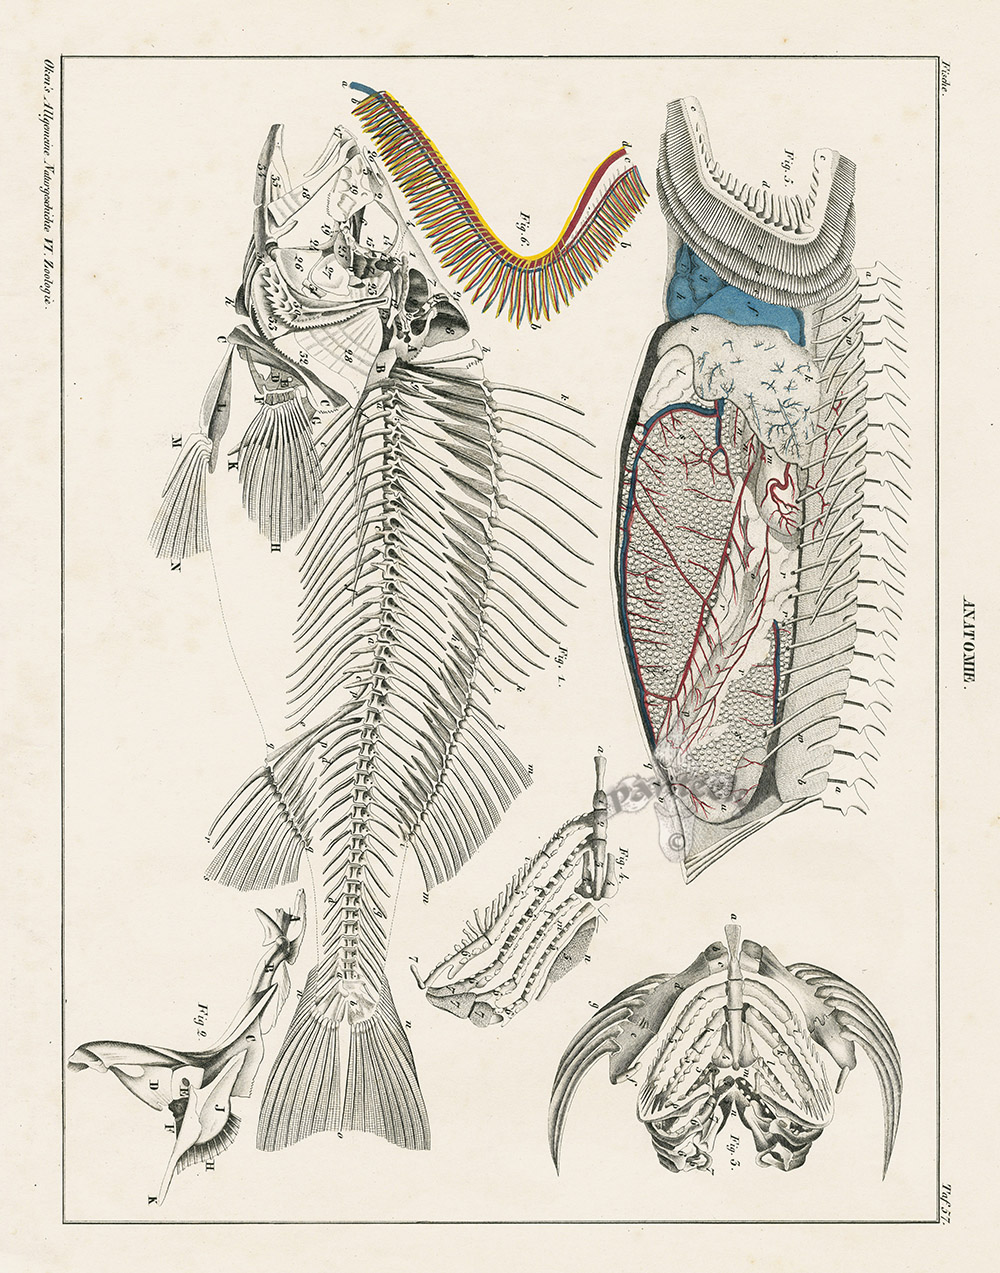 Fish Anatomy From Antique Fish Shell Prints By Oken